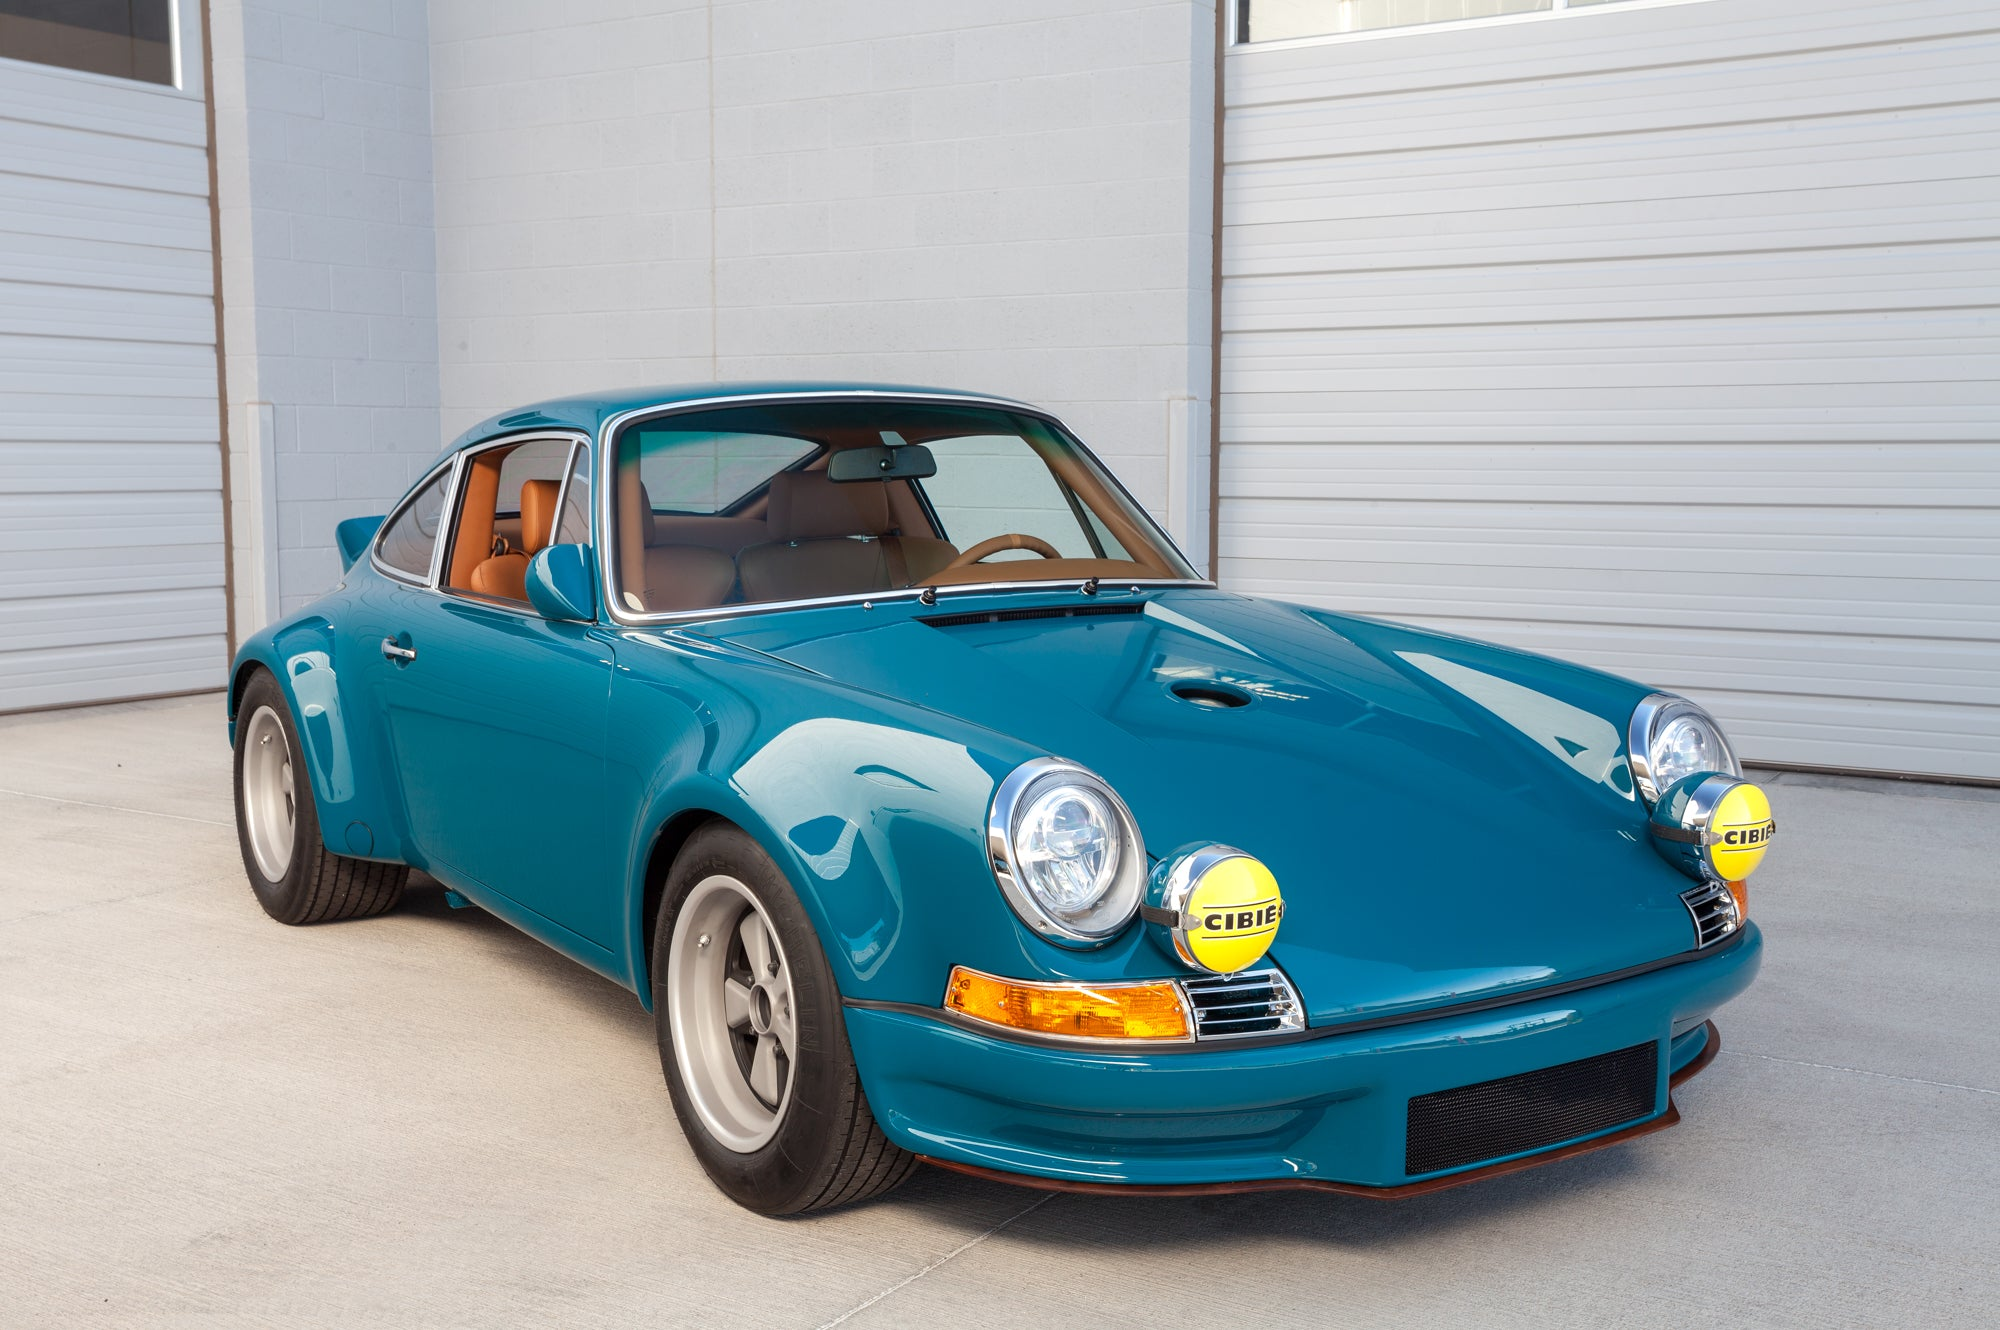 1975 1973 Porsche 911 RSR Backdate 993 Turbo Front